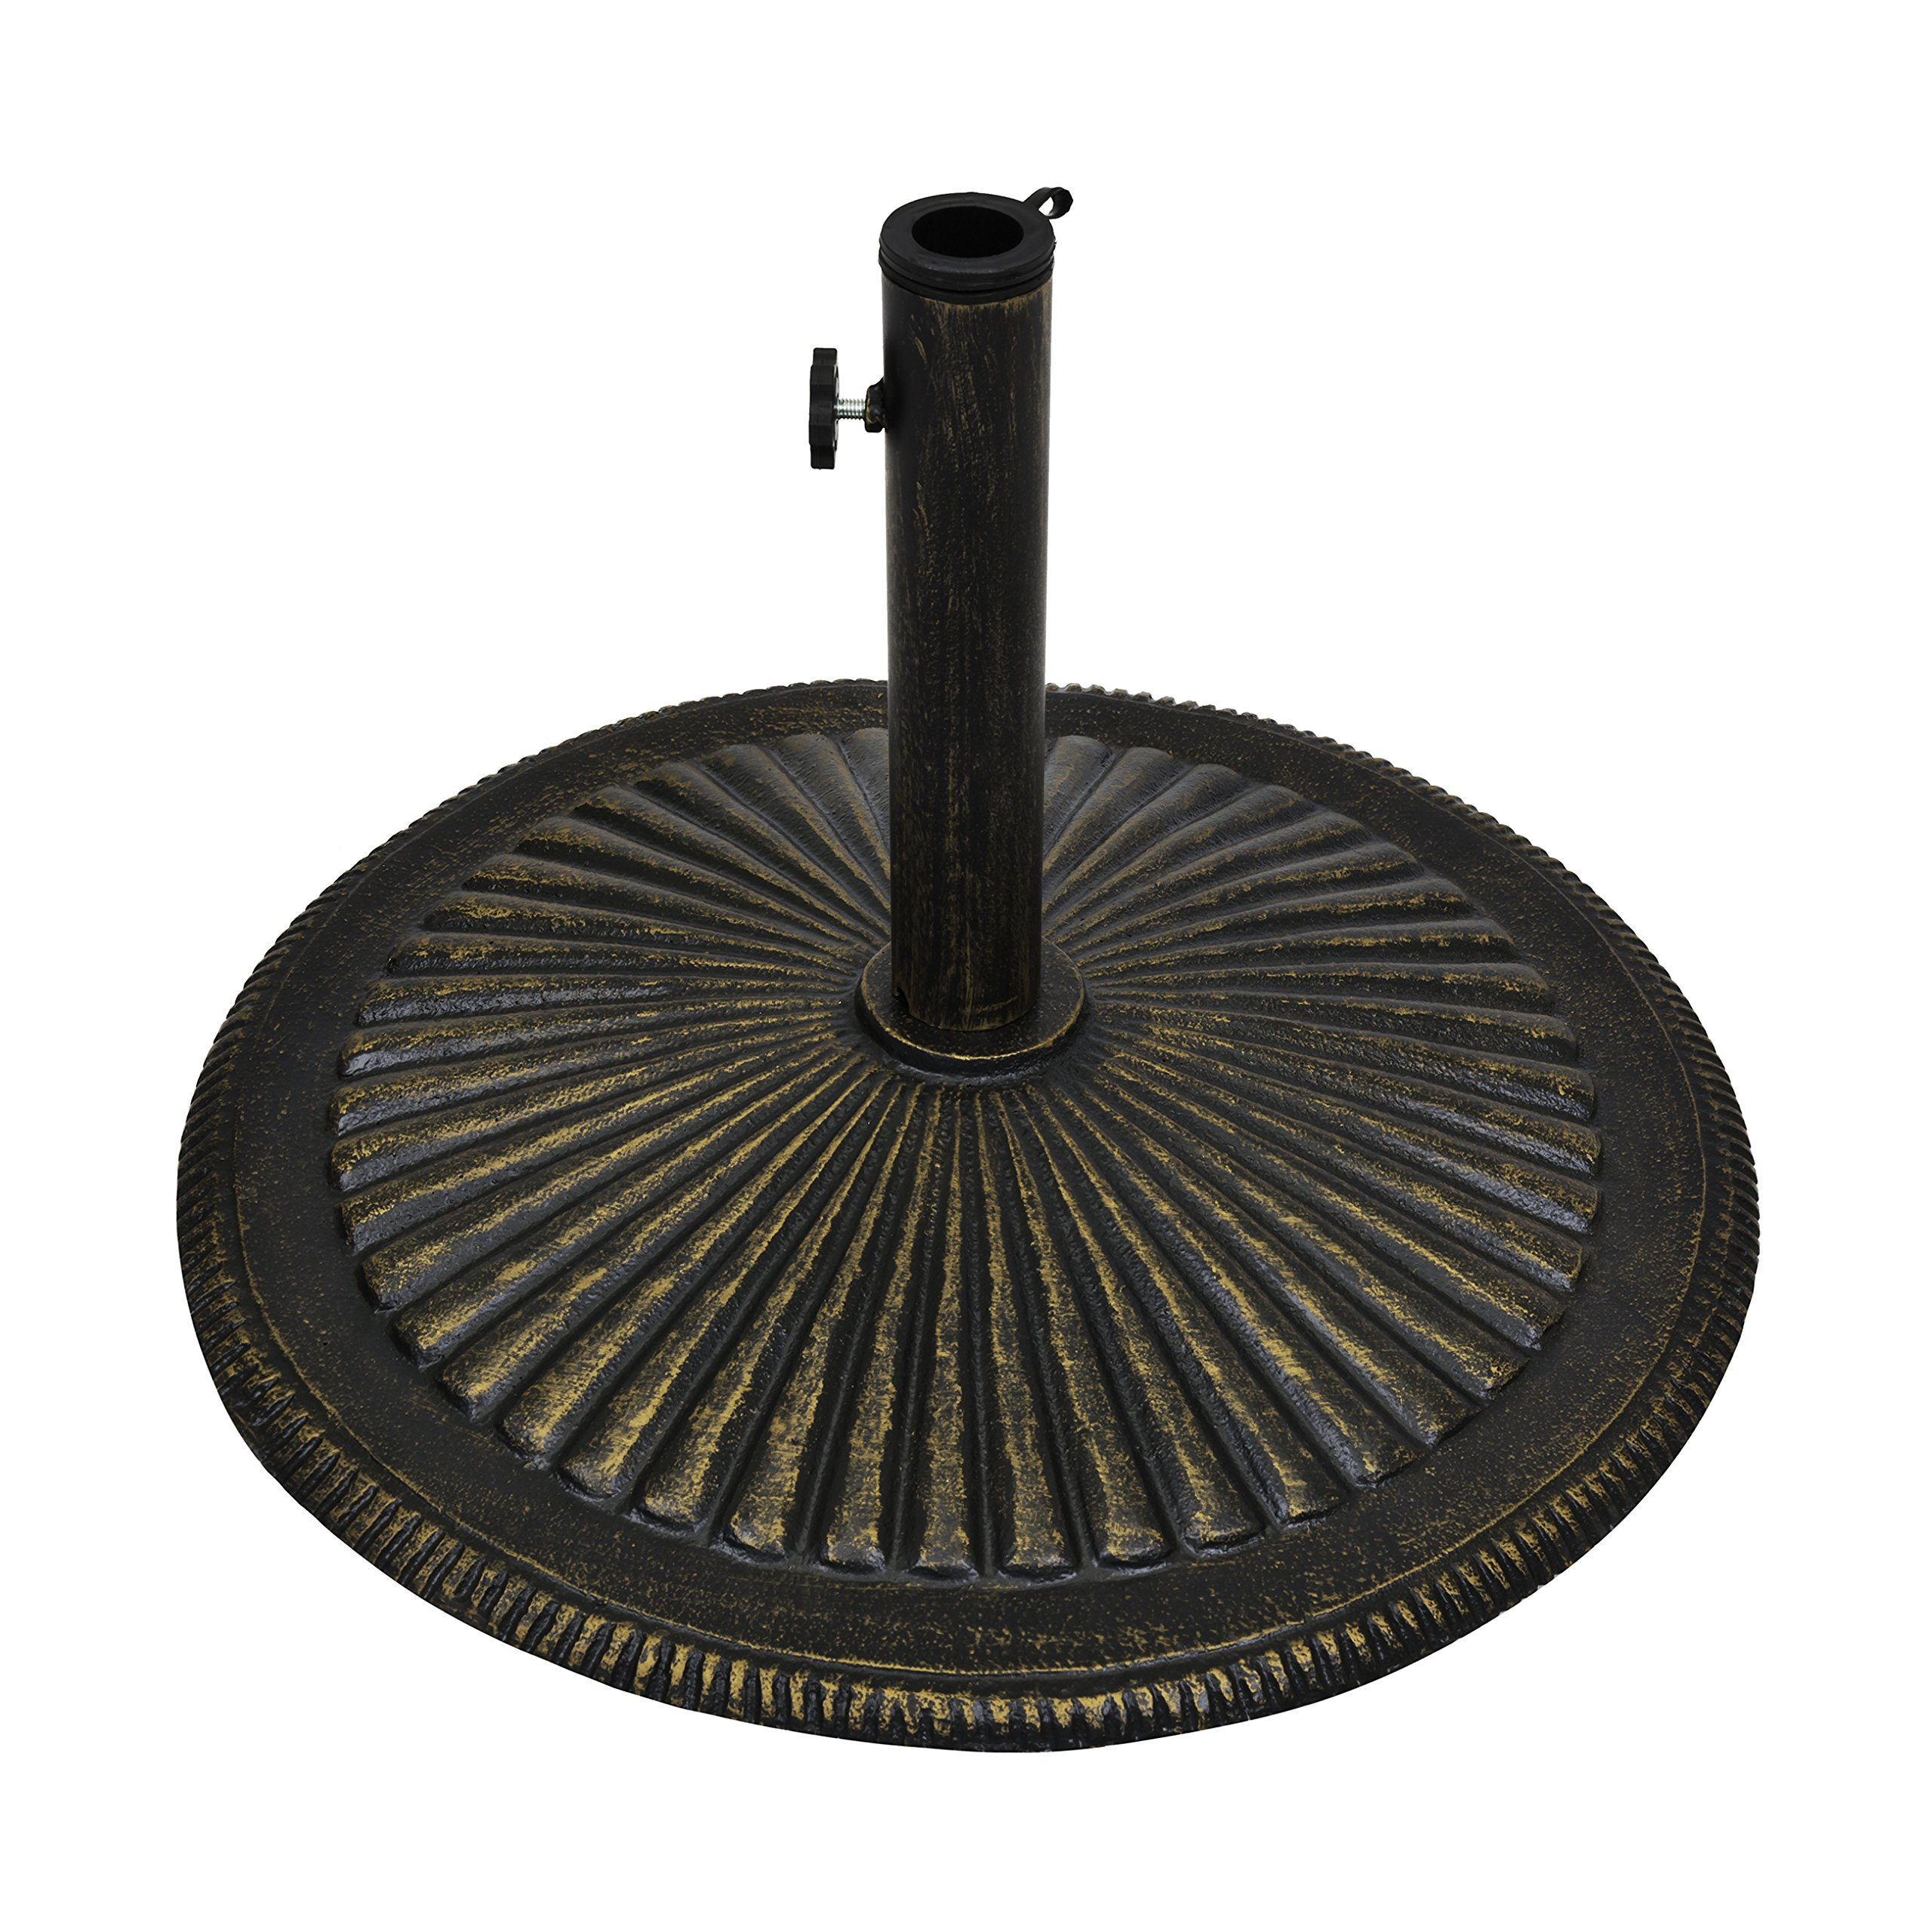 Best Choice Products Round 50-Pound Heavy-Duty Rustic Cast Iron Patio Umbrella Base Stand with Removable Stem and Tightening Knob, Bronze by Best Choice Products